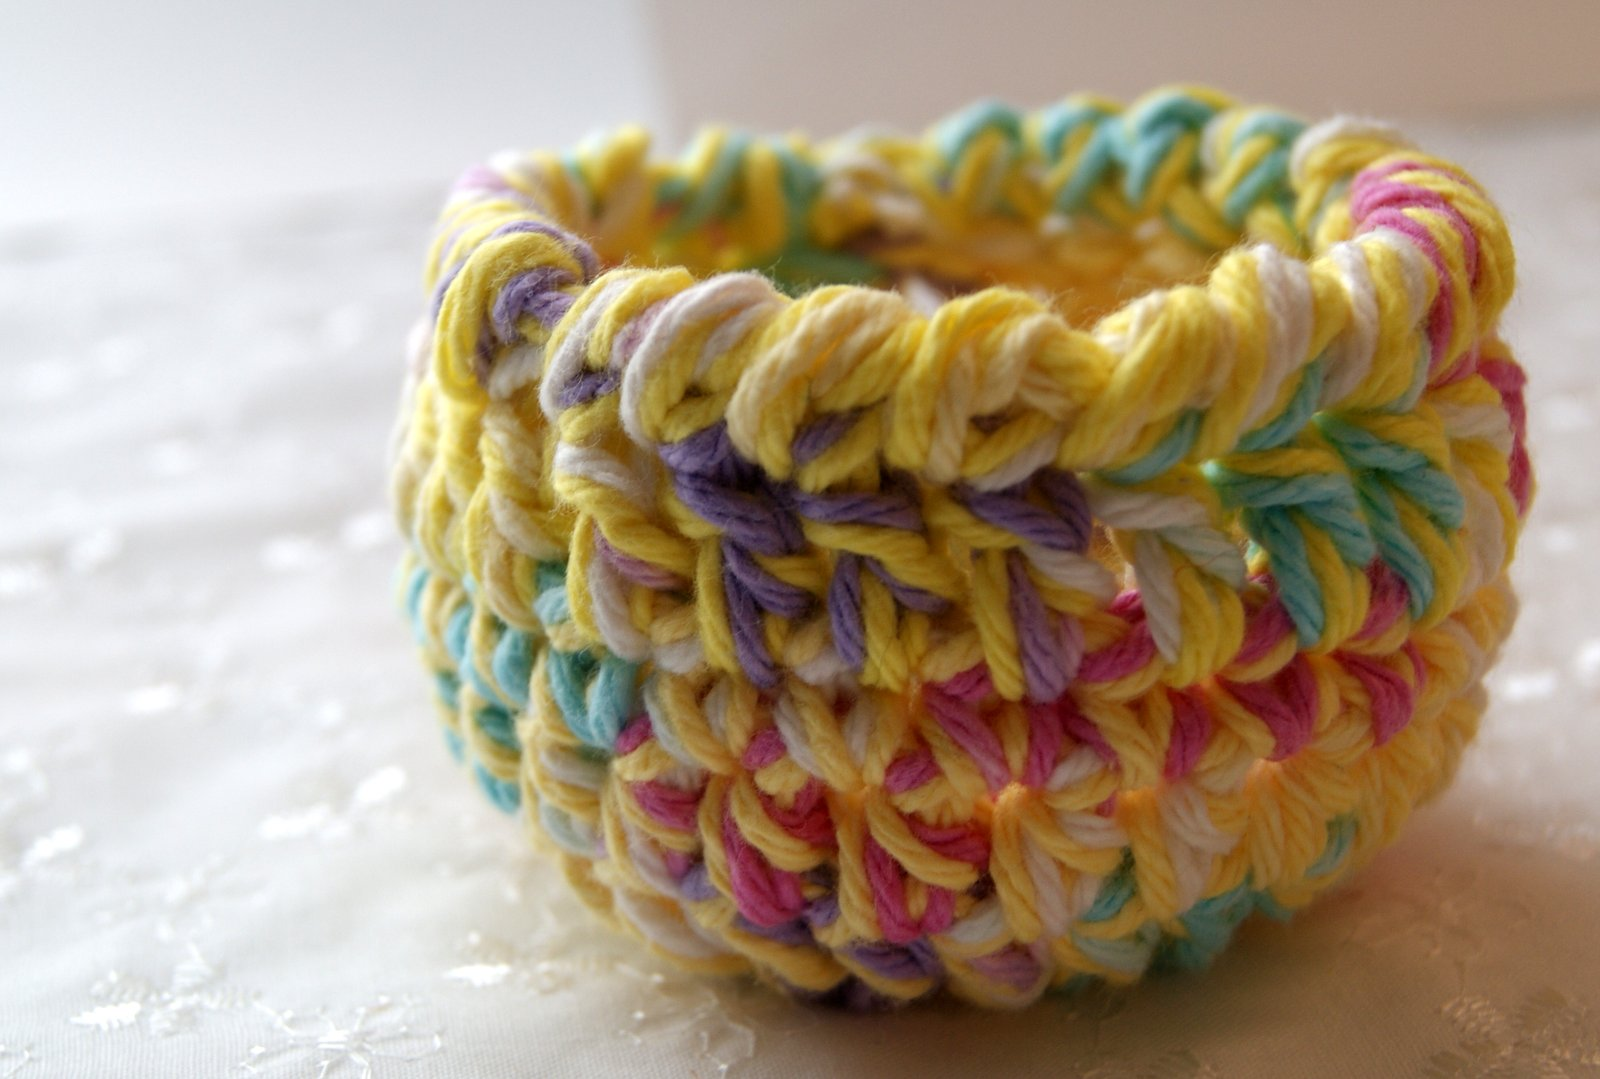 Super quick mini basket pattern stitch4ever heres what i did i used a size h hook and two strands of lily sugar n cream yarns one solid and one variegated both colors were left over little balls negle Images